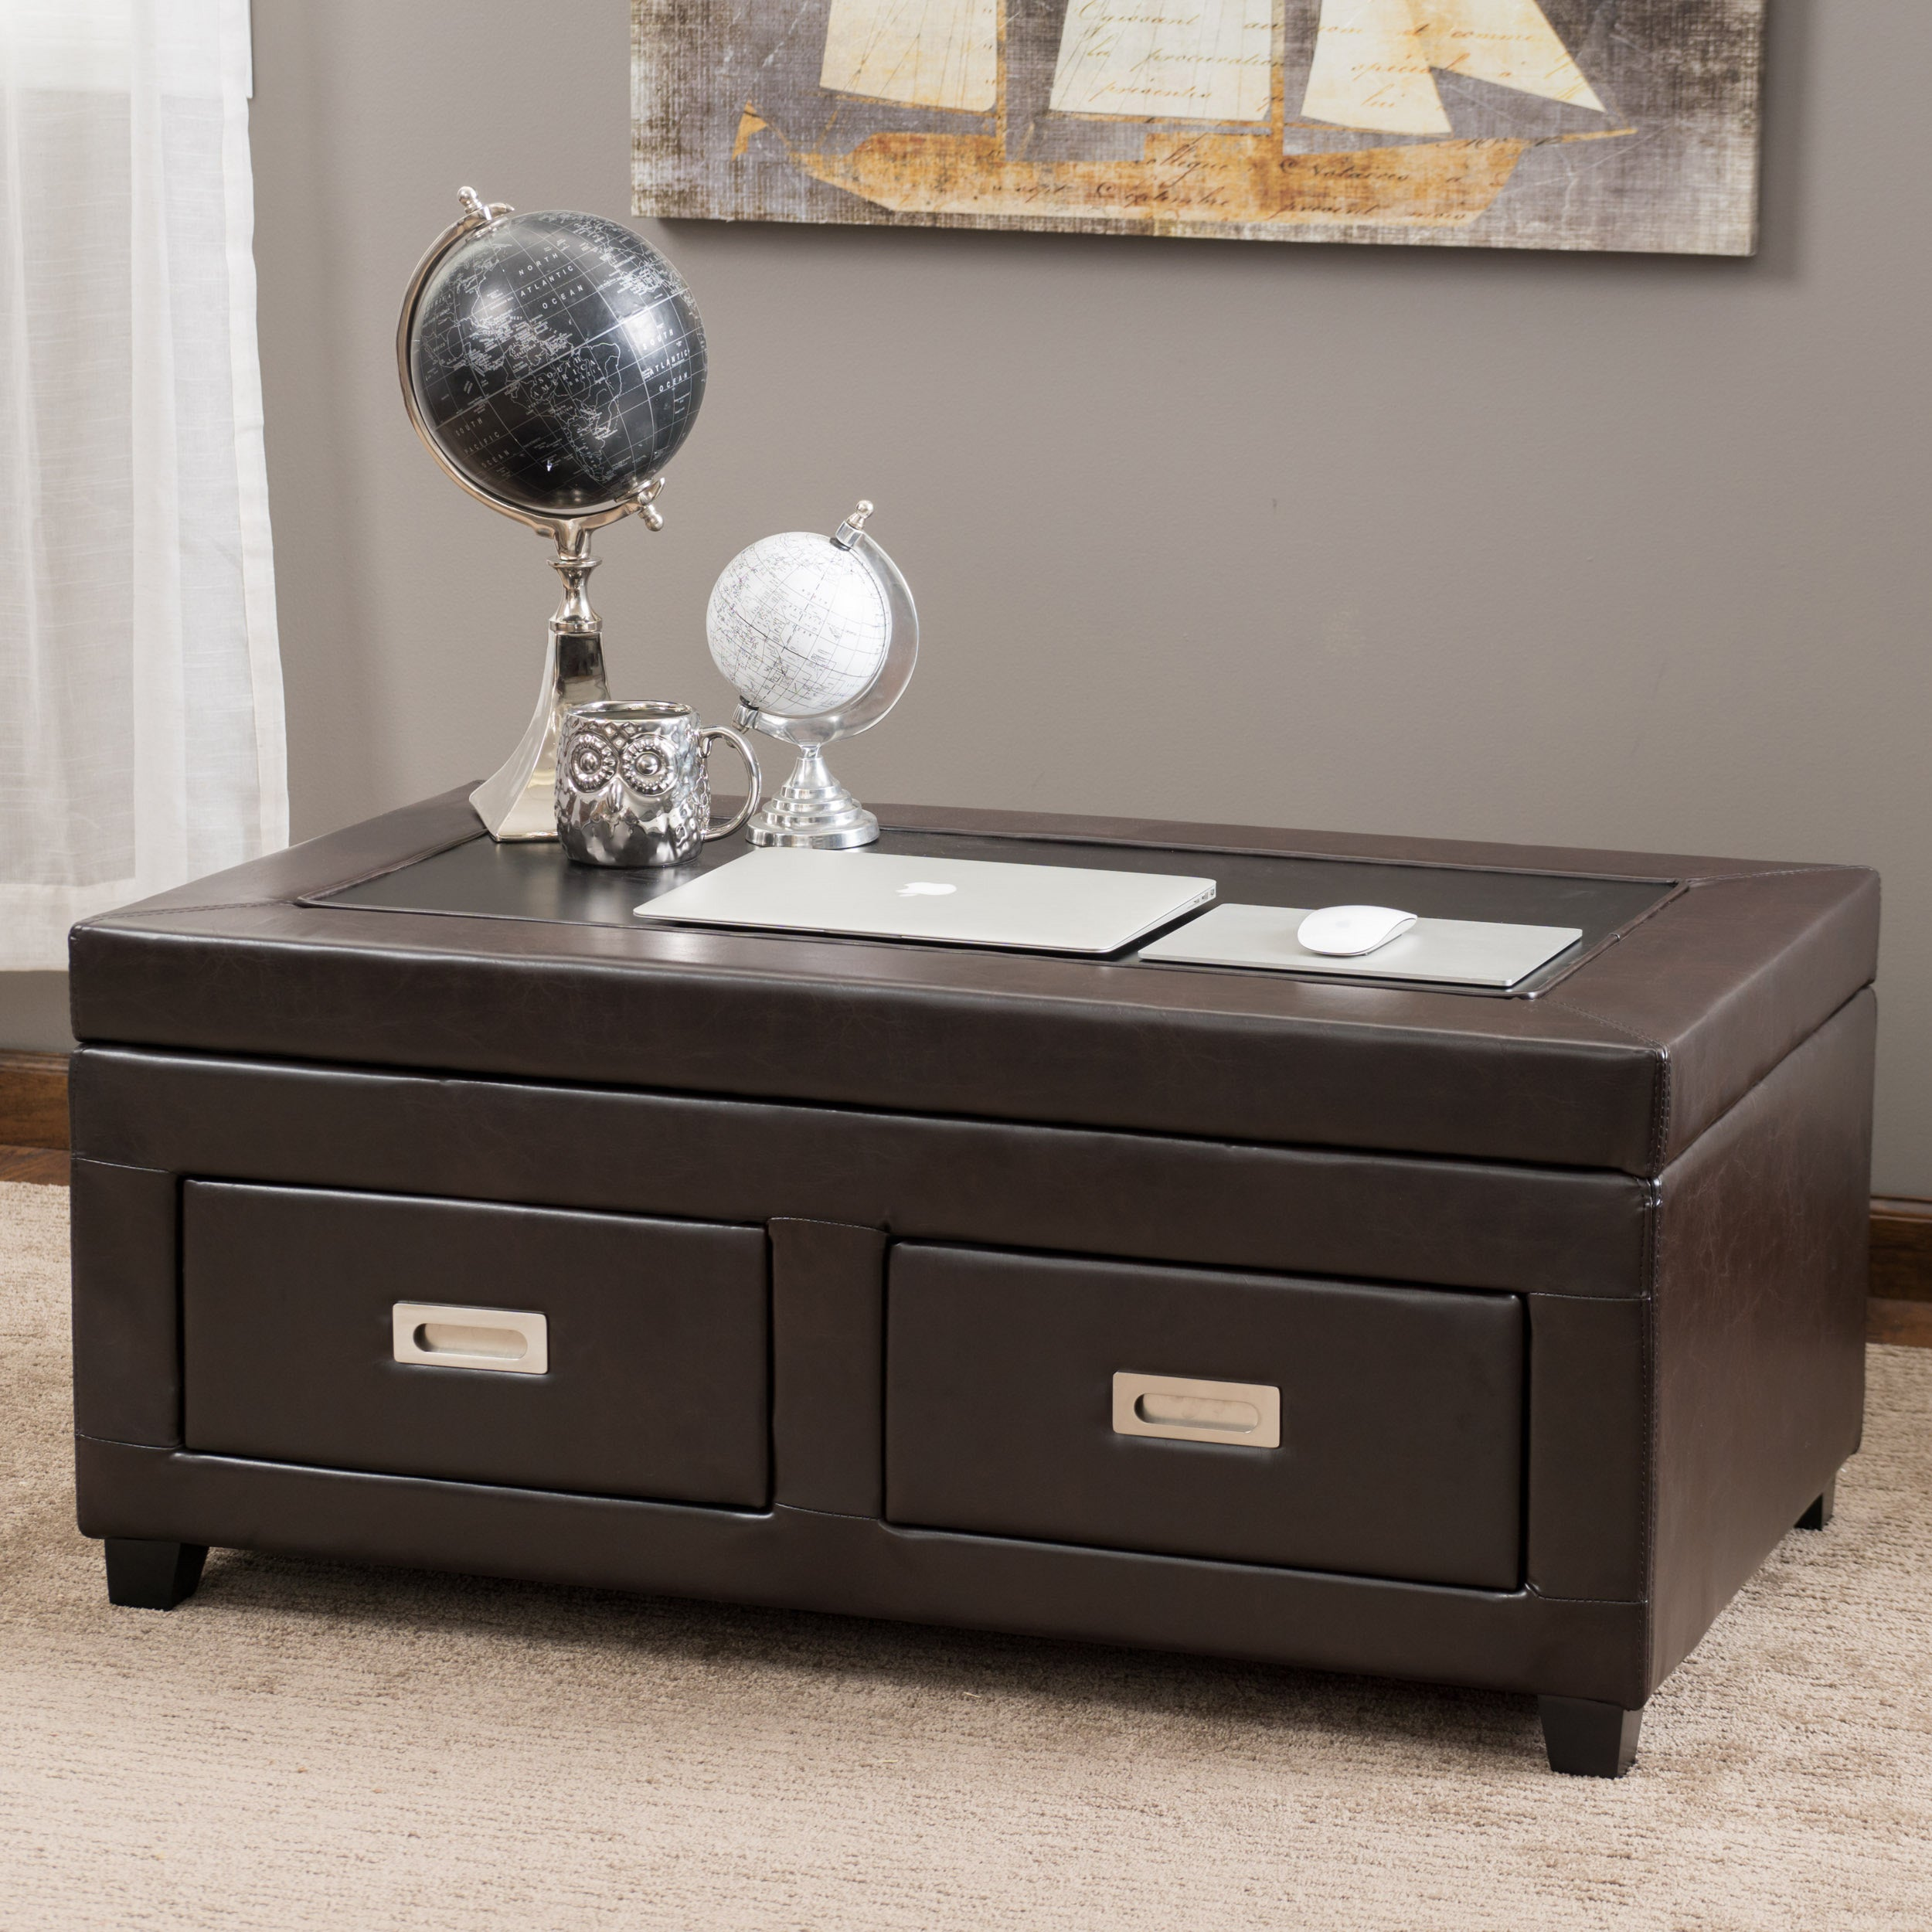 Christopher Knight Home Stafford Adjustable Bonded Leather Table